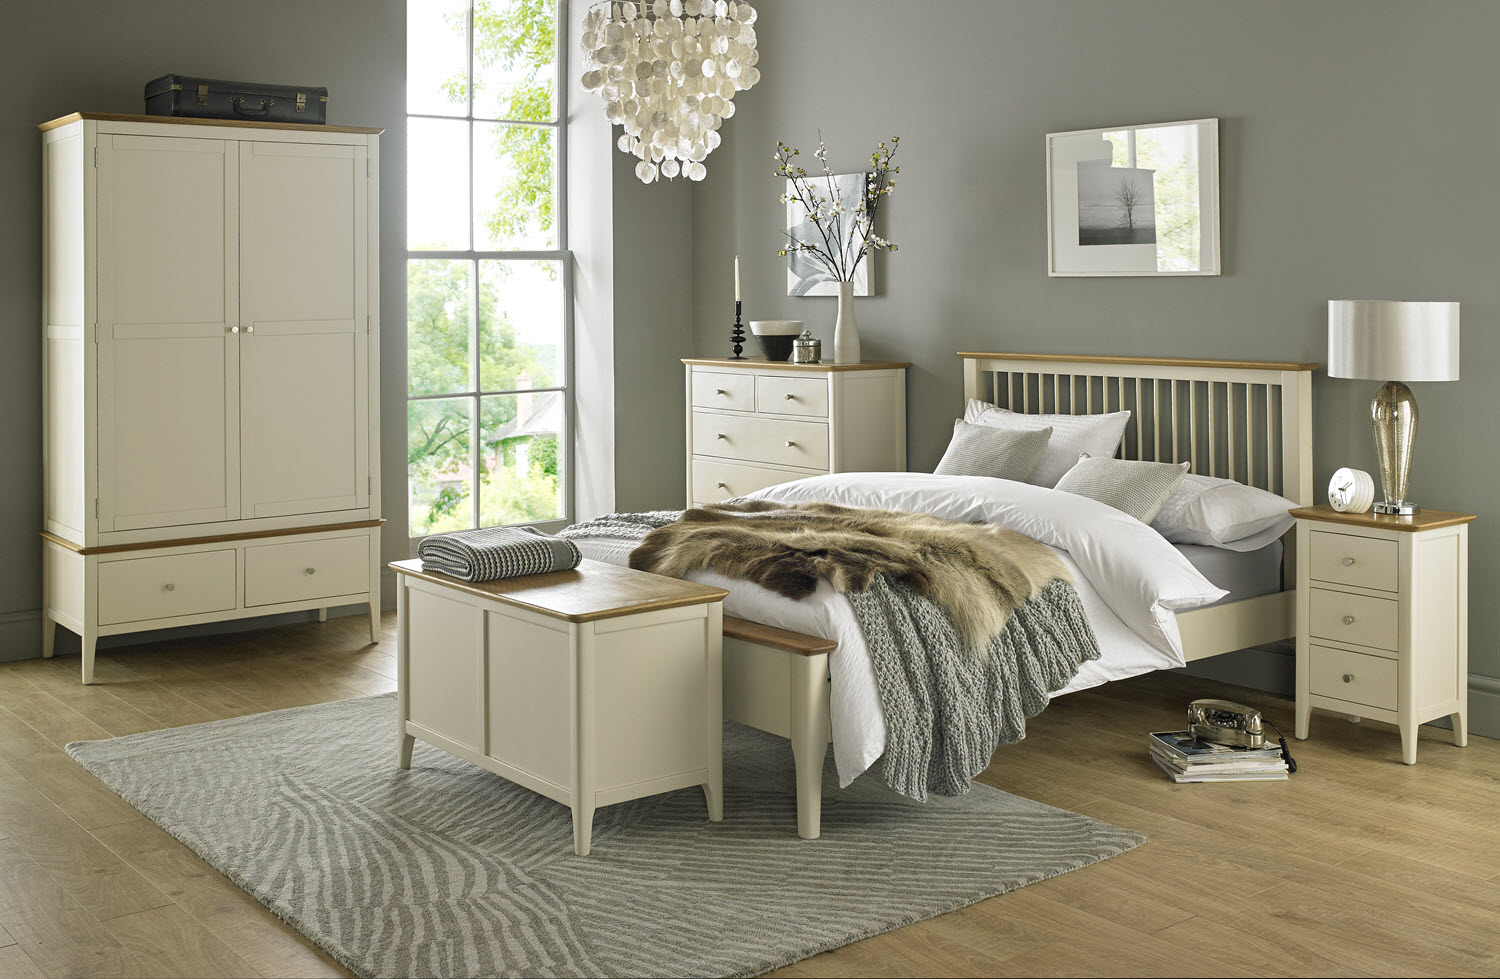 colored bedroom furniture. Geneva Painted Colored Bedroom Furniture